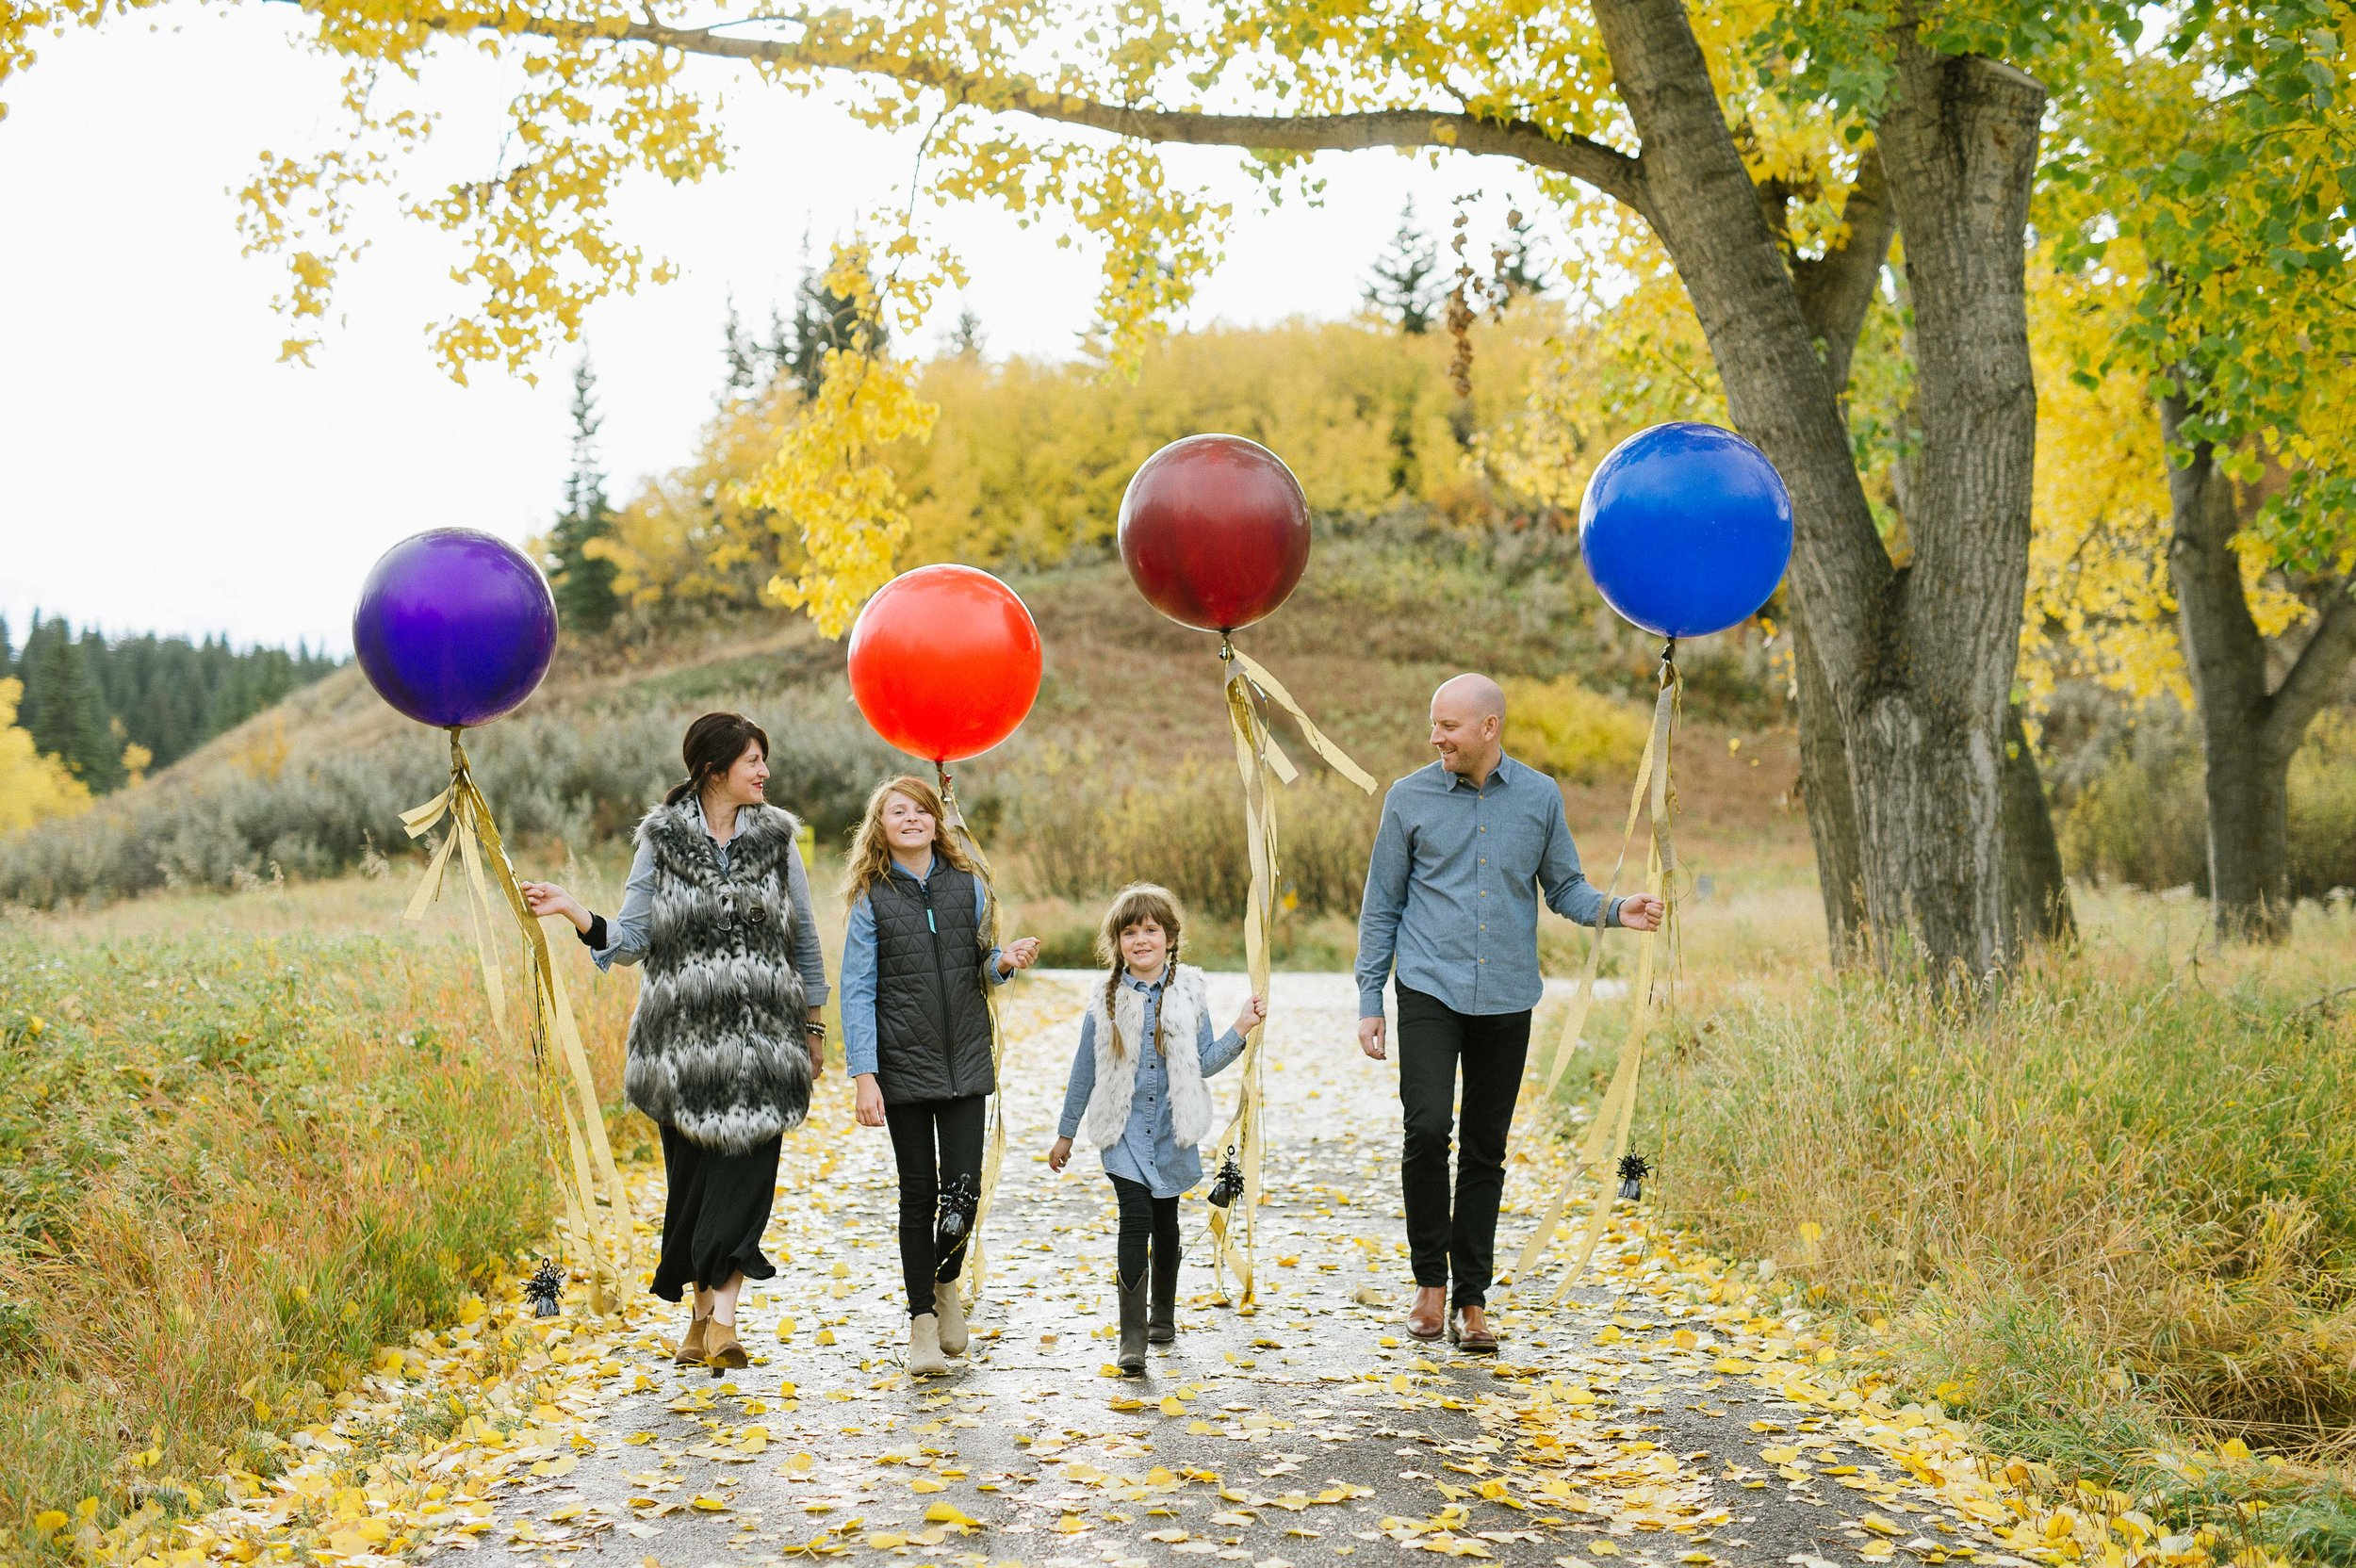 Christy-D-Swanberg-Photography-Calgary-maternity-lifestyle-portraits-family-baby-20.jpg